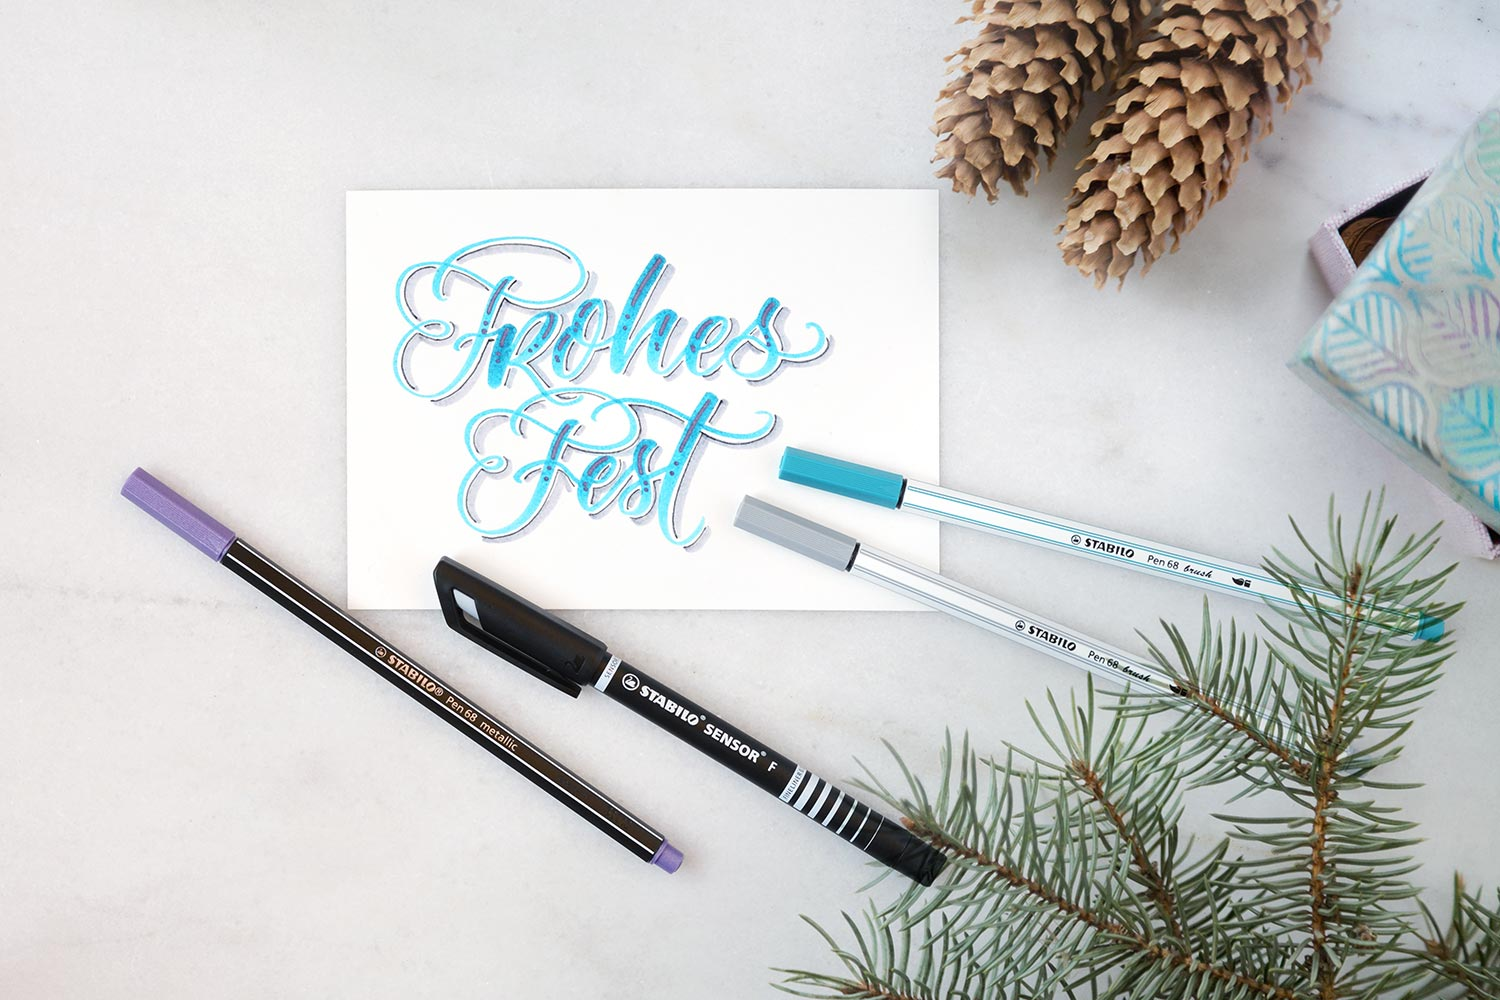 Frohes Fest Stabilo Pen 68 brush